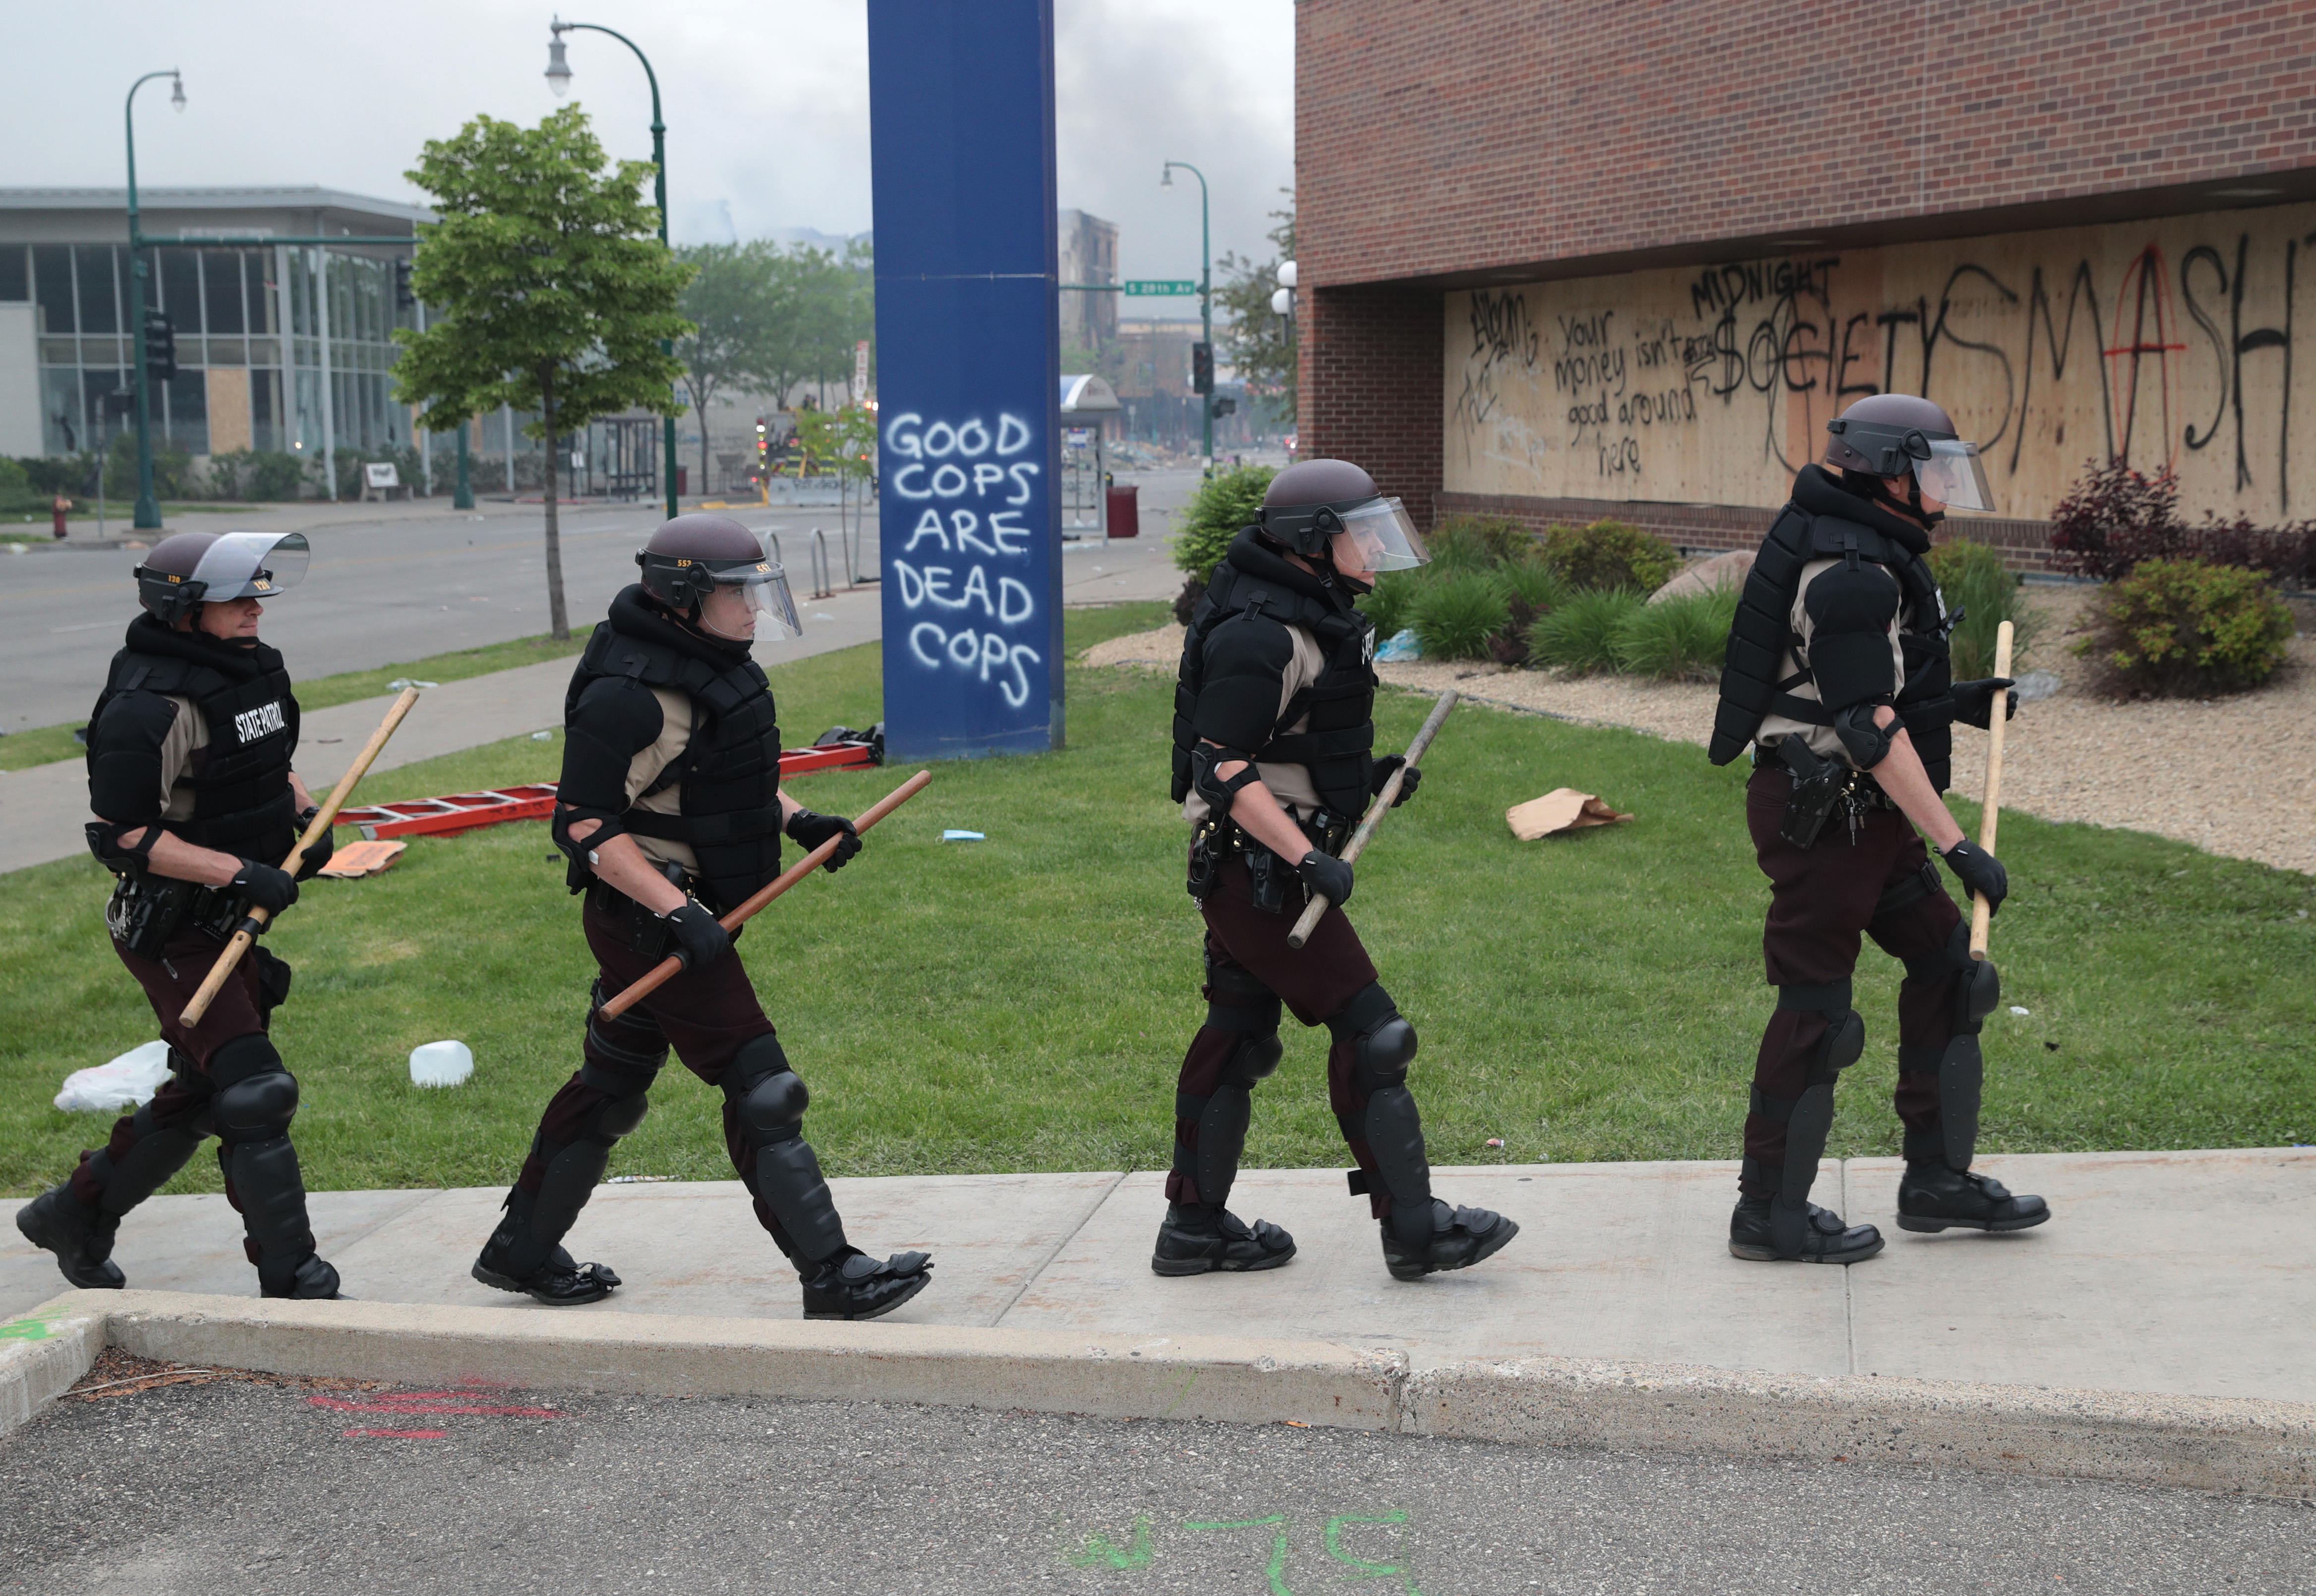 MINNEAPOLIS, MINNESOTA - MAY 29: Police carrying batons patrol on the fourth day of protests on May 29, 2020 in Minneapolis, Minnesota. The National Guard has been activated as protests continue after the death of George Floyd which has caused widespread destruction and fires across Minneapolis and St. Paul. (Photo by Scott Olson/Getty Images)